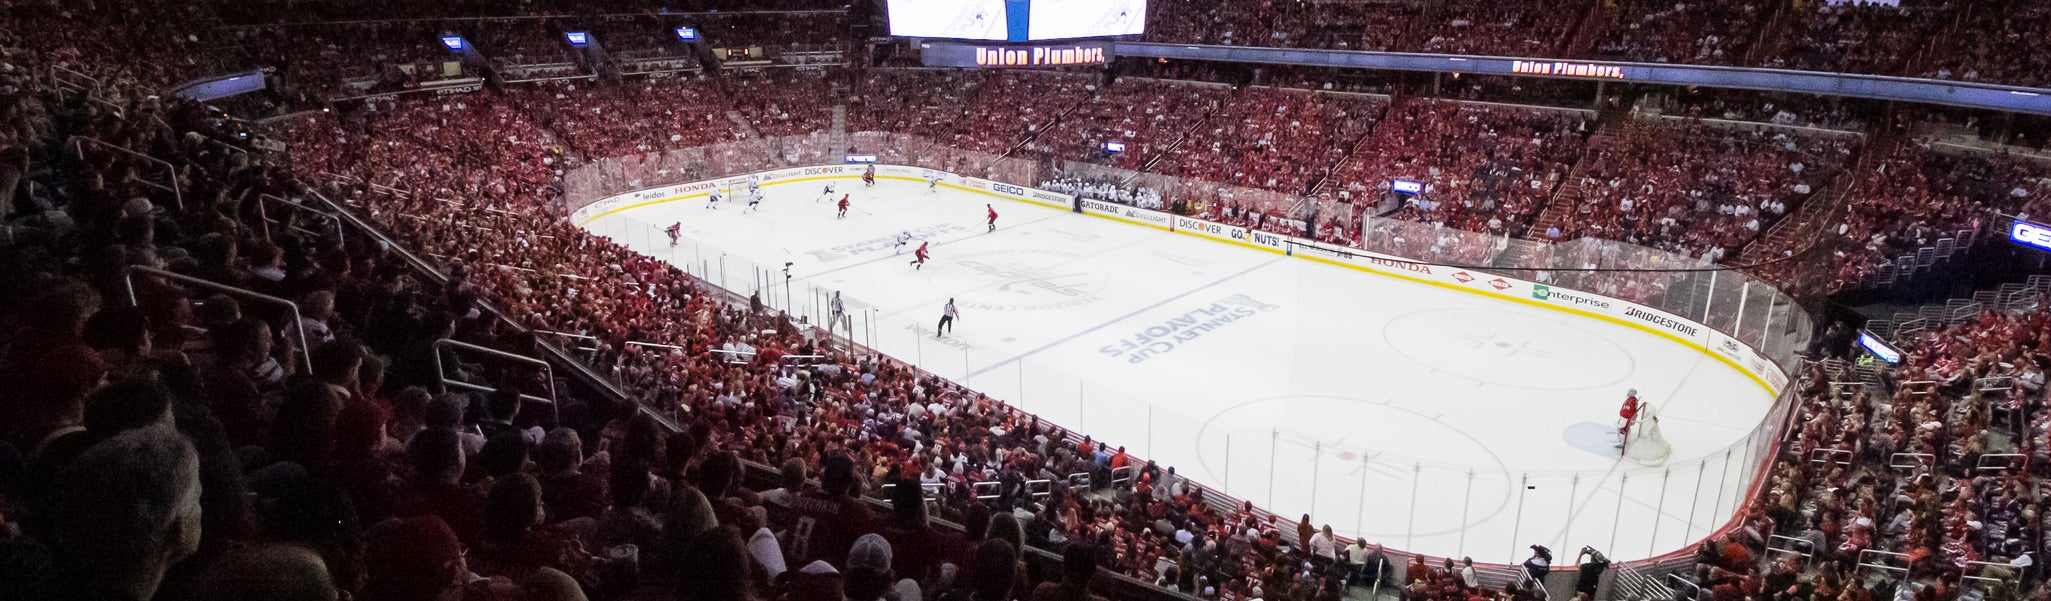 Seat view from Acela Level Corner 219 at Capital One Arena